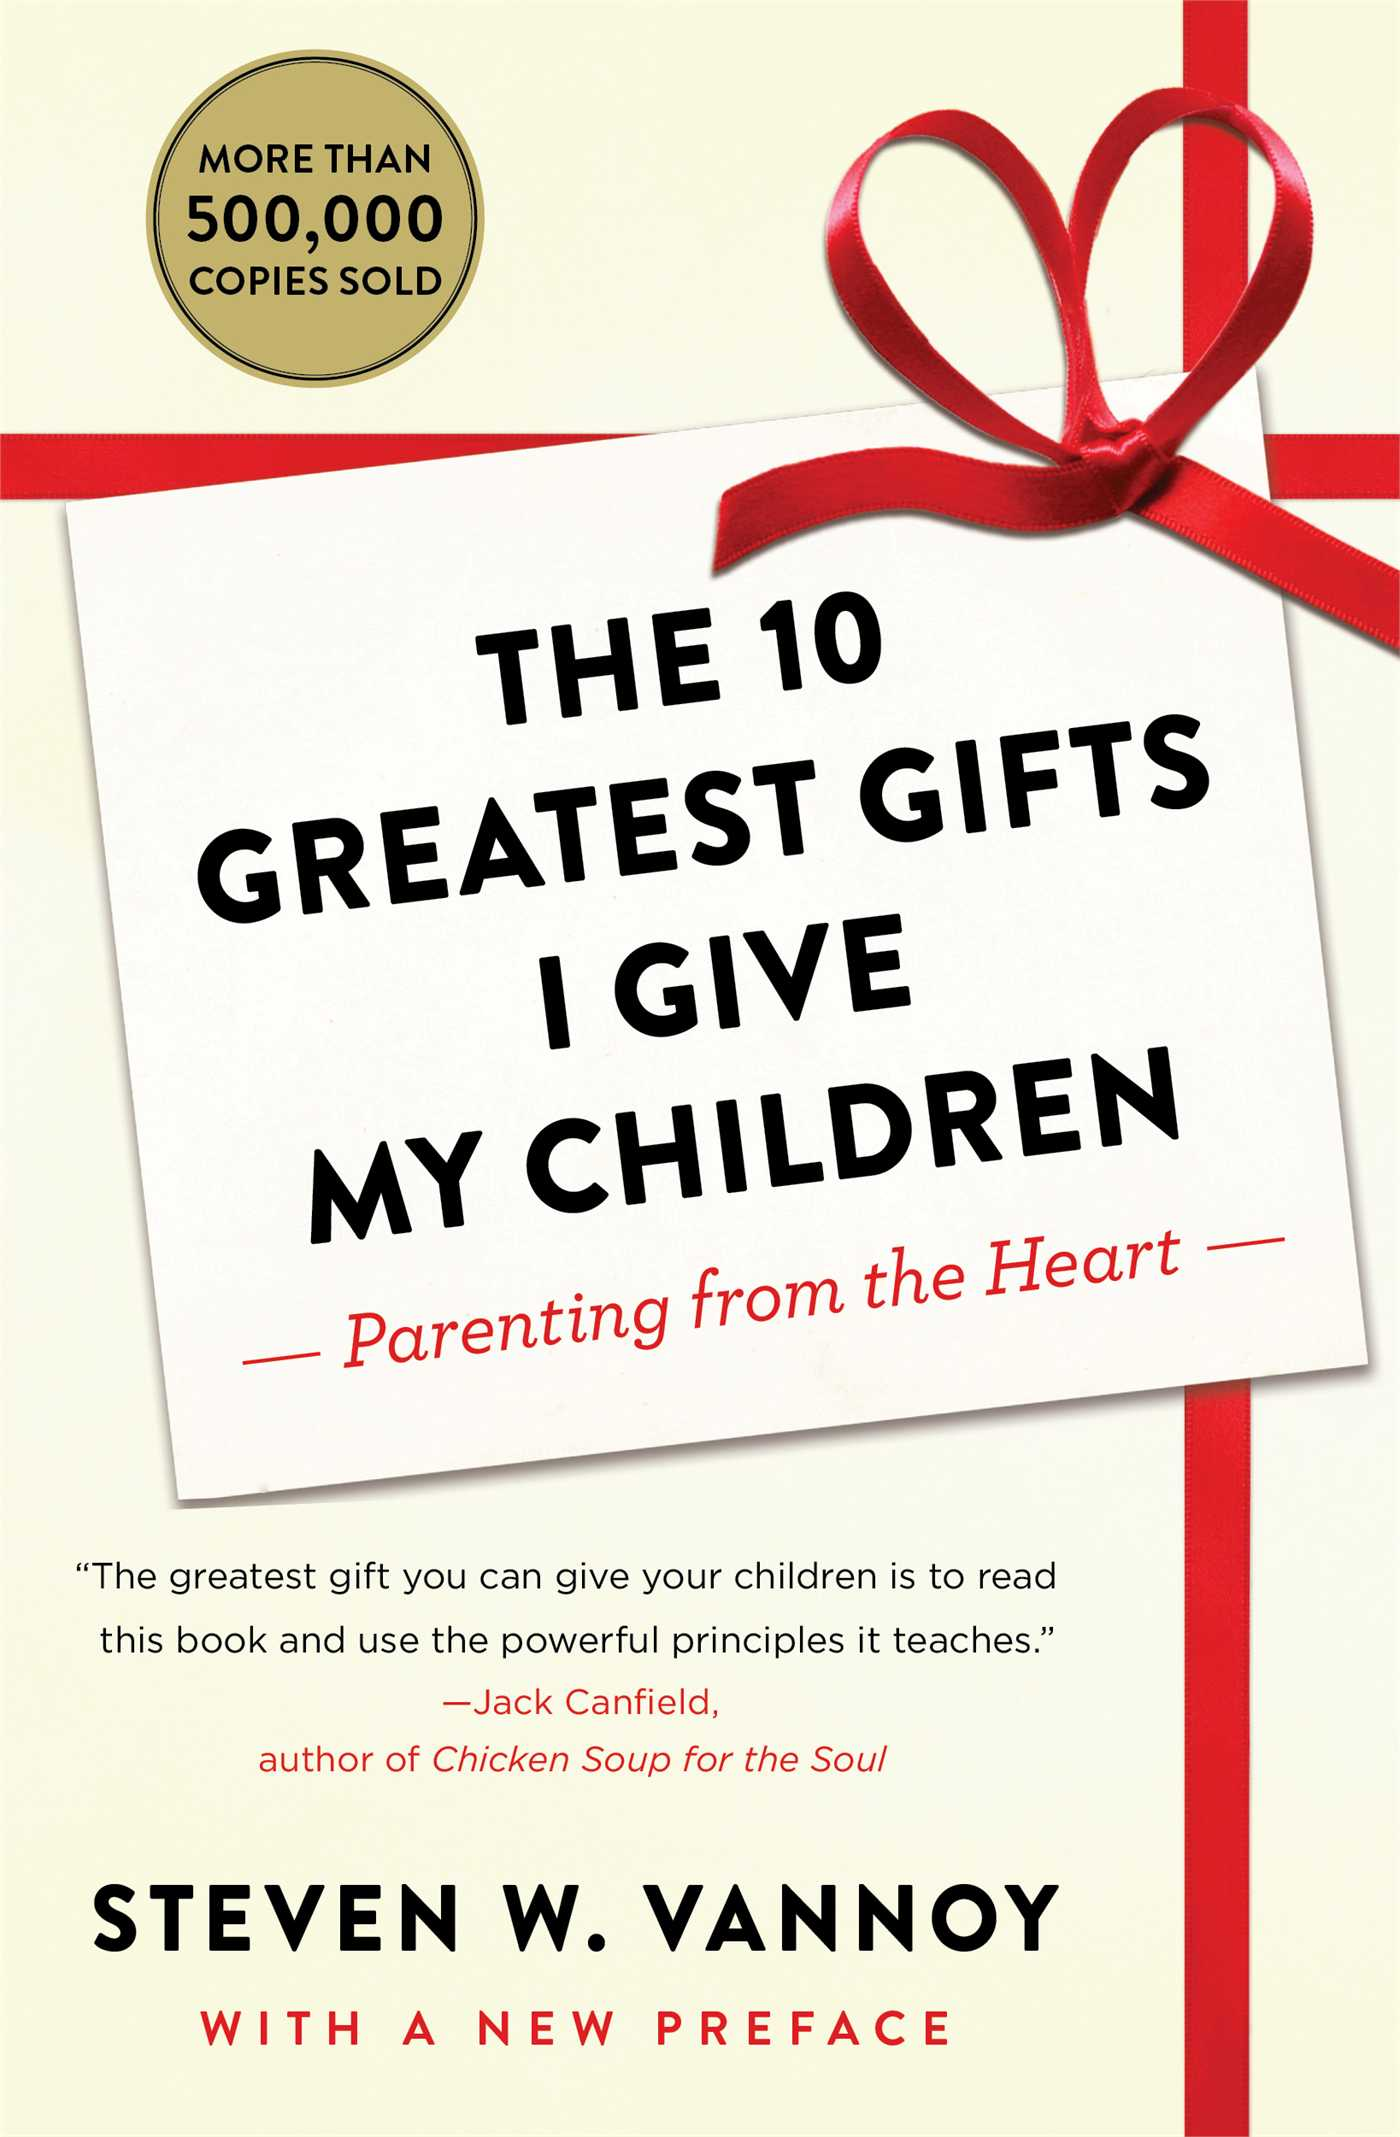 10 greatest gifts i give my children 9781476762975 hr